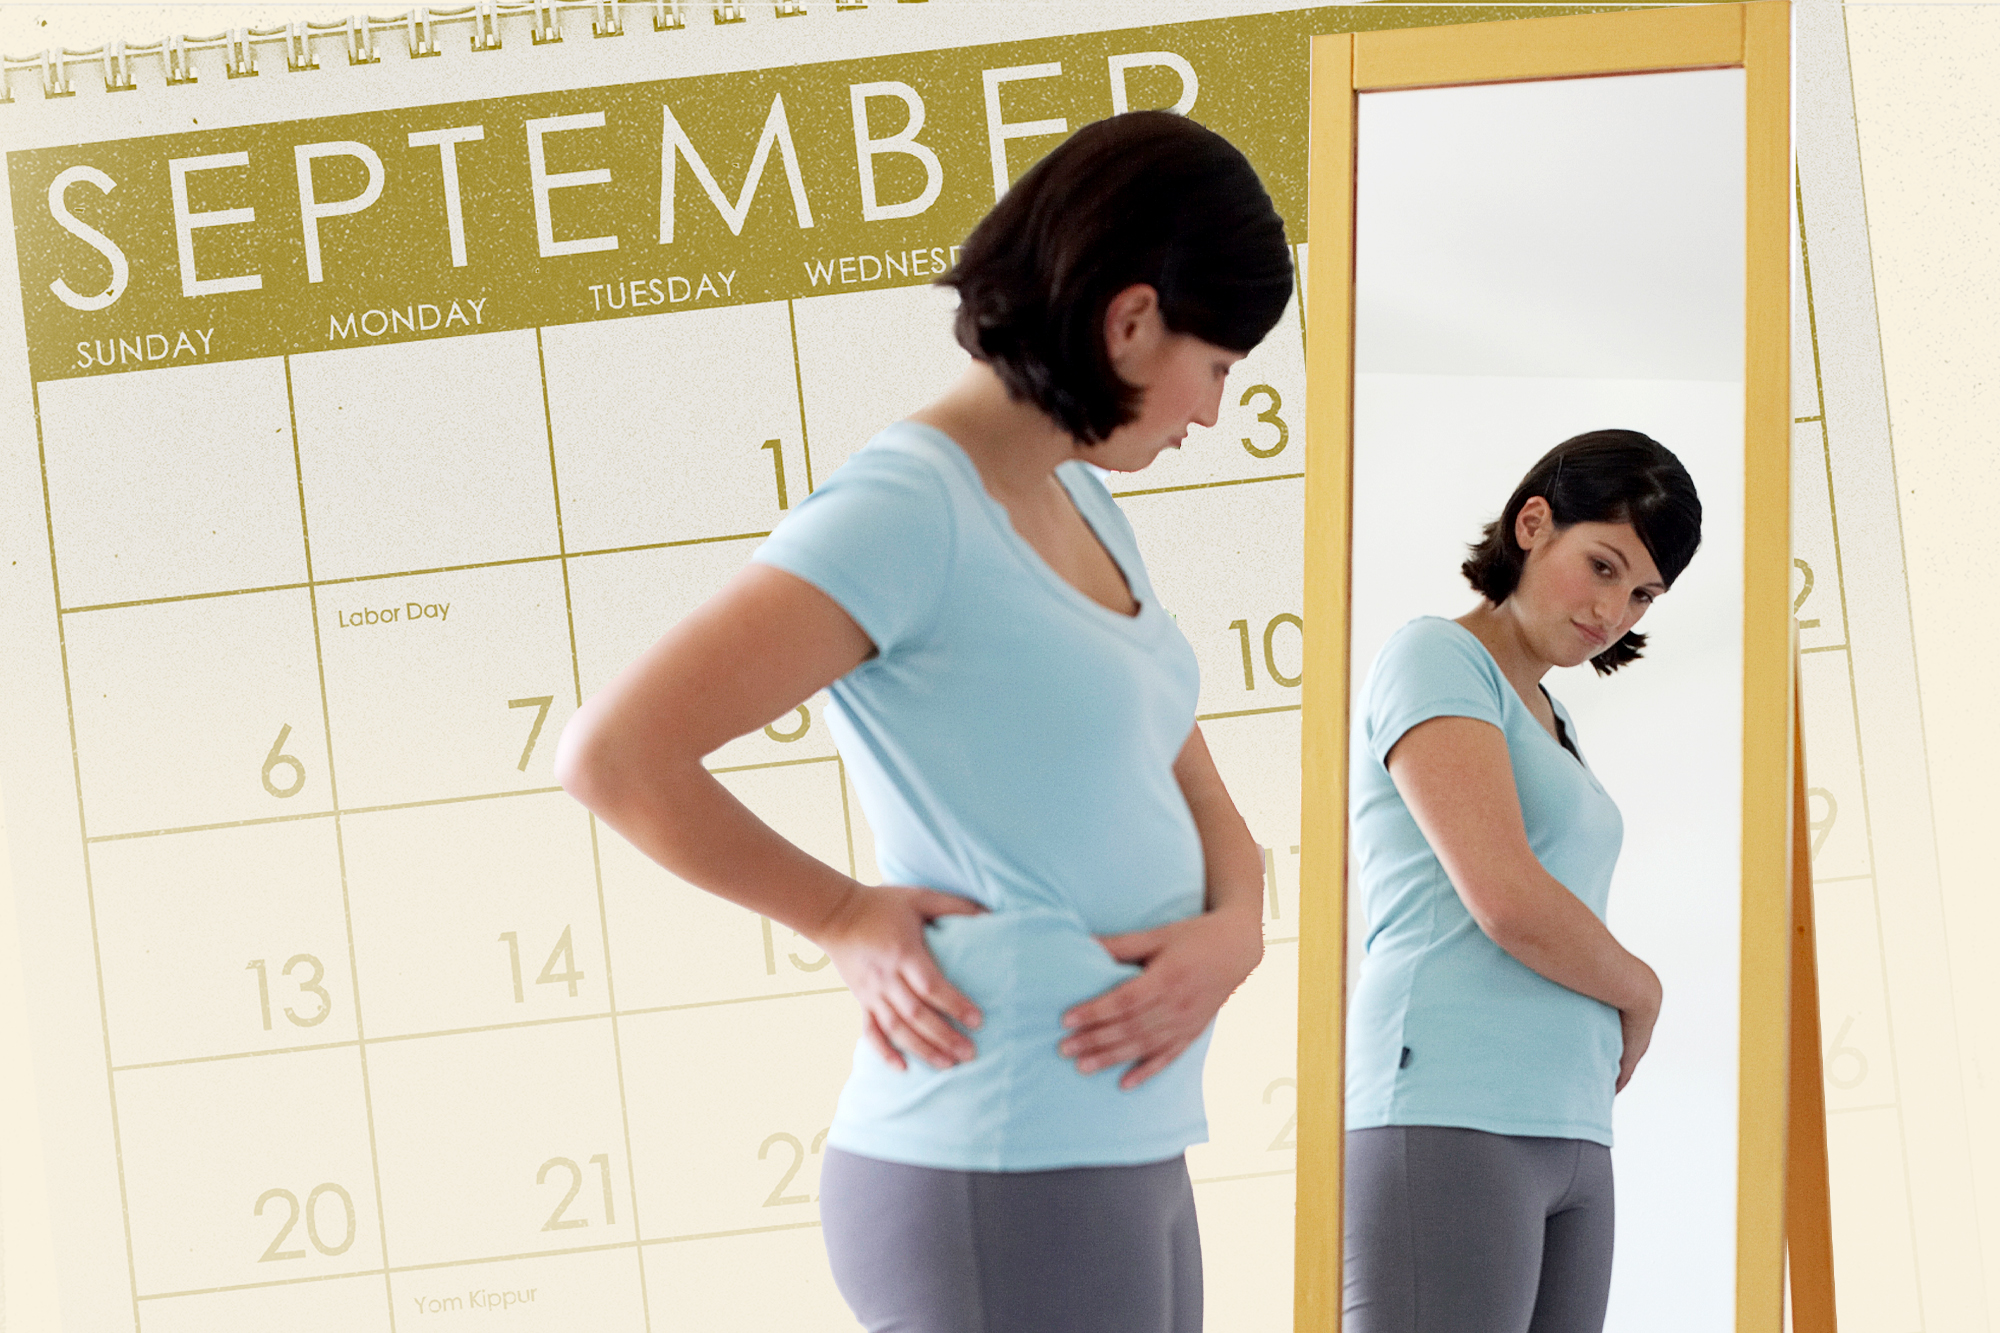 Woman looking at body in mirror with a September calendar in the background